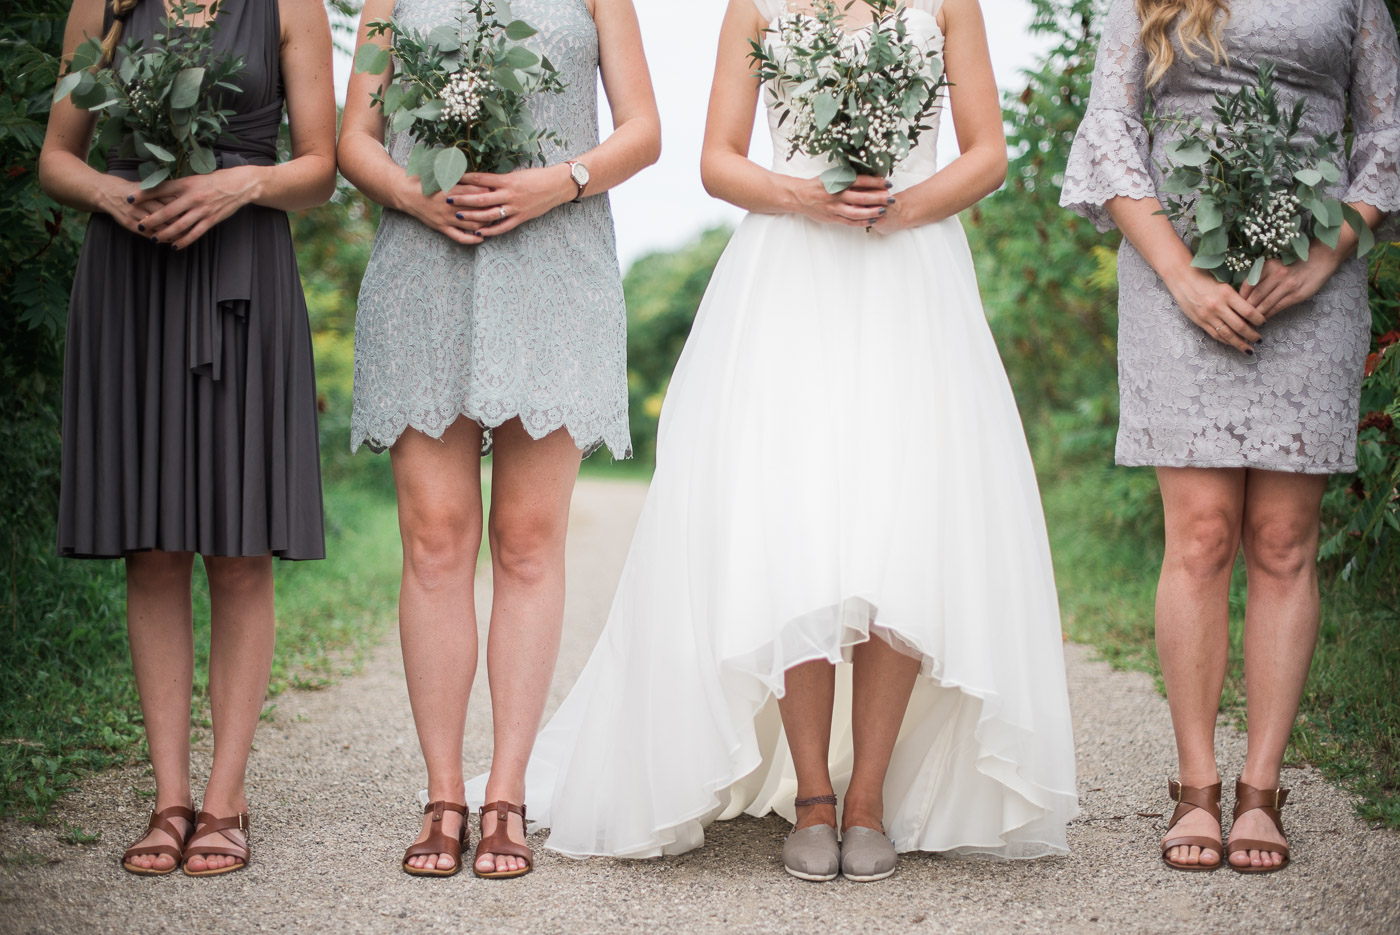 Wedding itinerary - Three months before the wedding day, we send you a questionnaire for the itinerary for the day and help you draft one if you have not started already. Tell us your inspiration and special must-have shots and we can help make it happen!